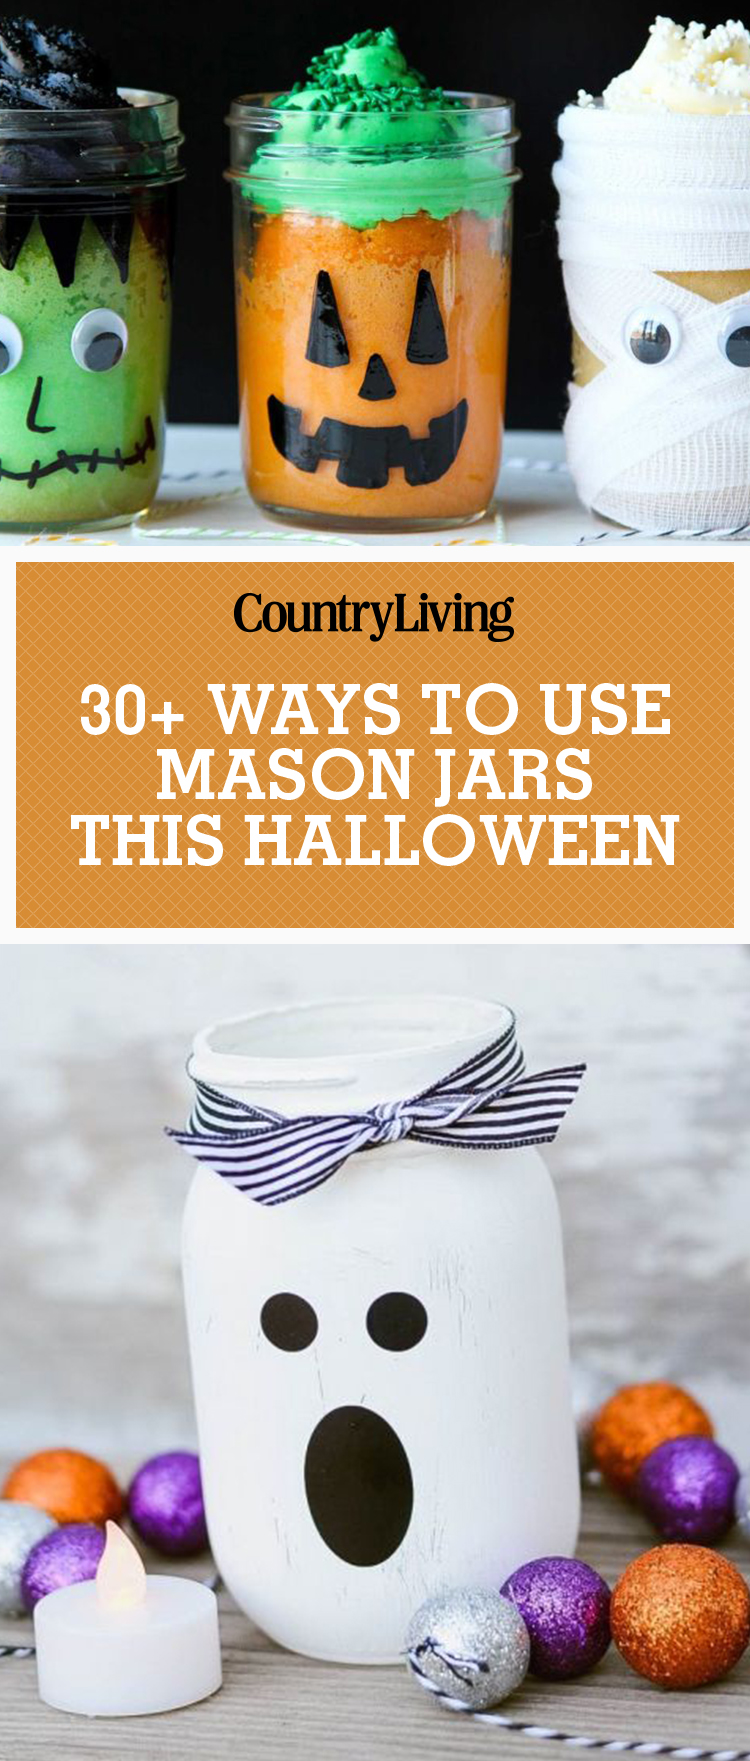 35 halloween mason jars craft ideas for using mason jars for halloween - Craft Halloween Decorations